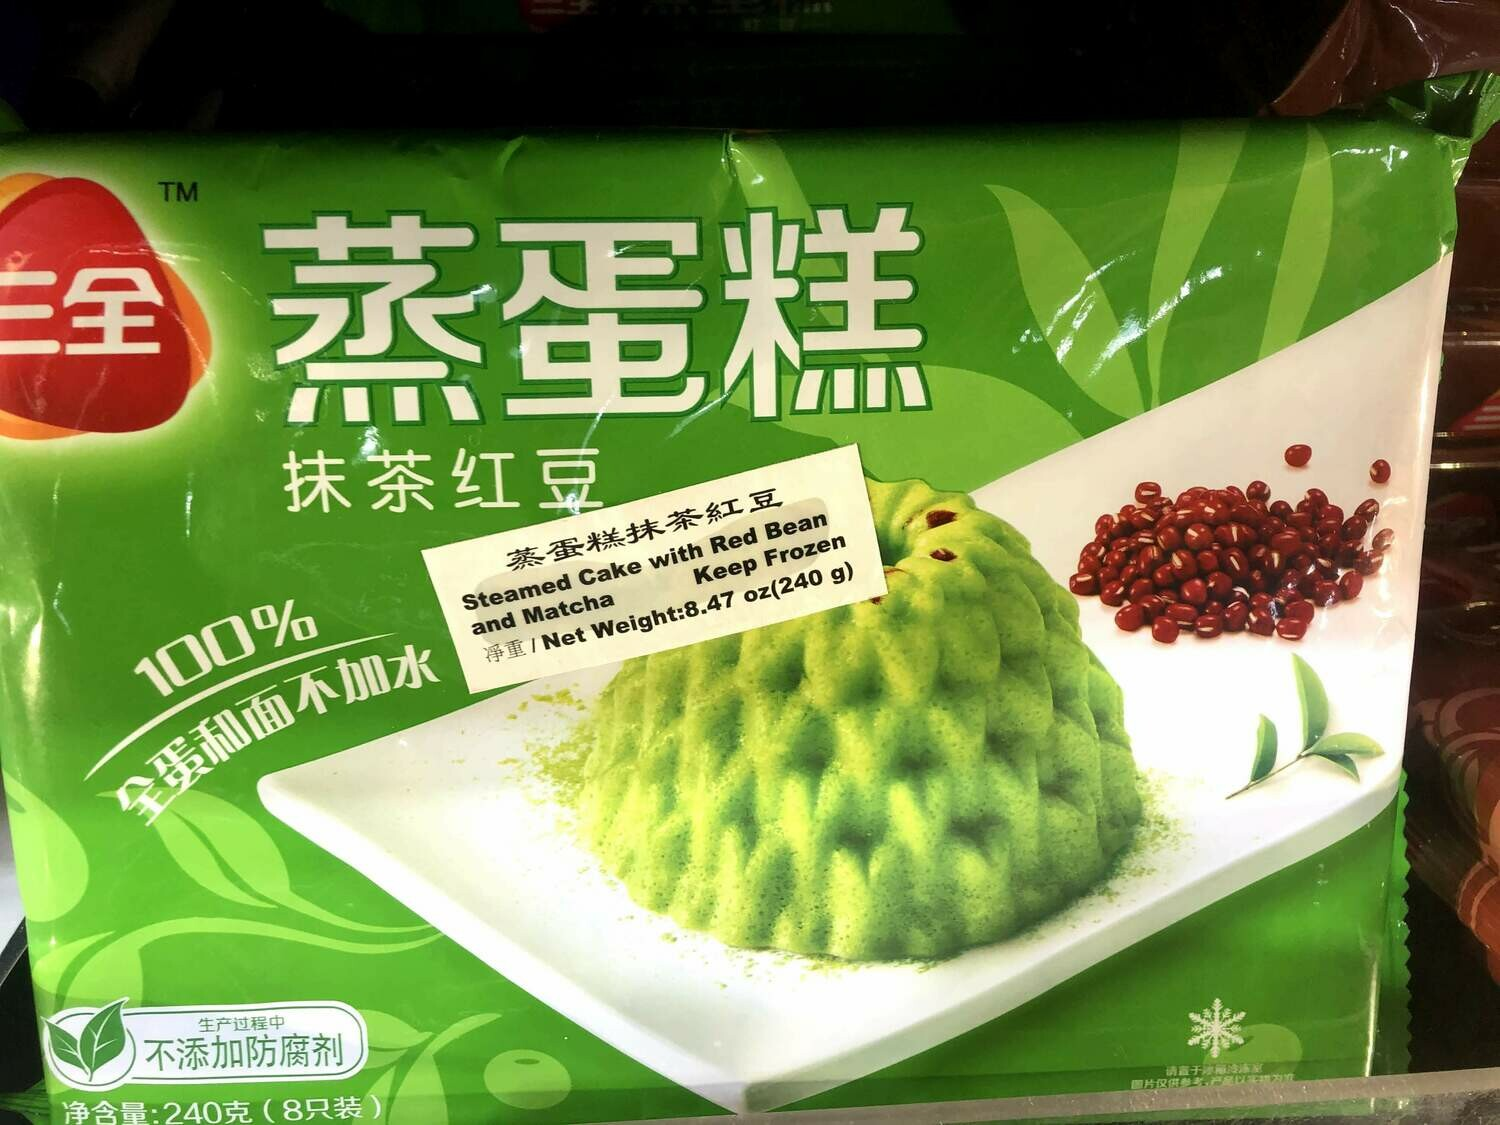 【RBF】Steamed Cake with Red Bean and Matcha 三全 蒸蛋糕 抹茶红豆(240g)